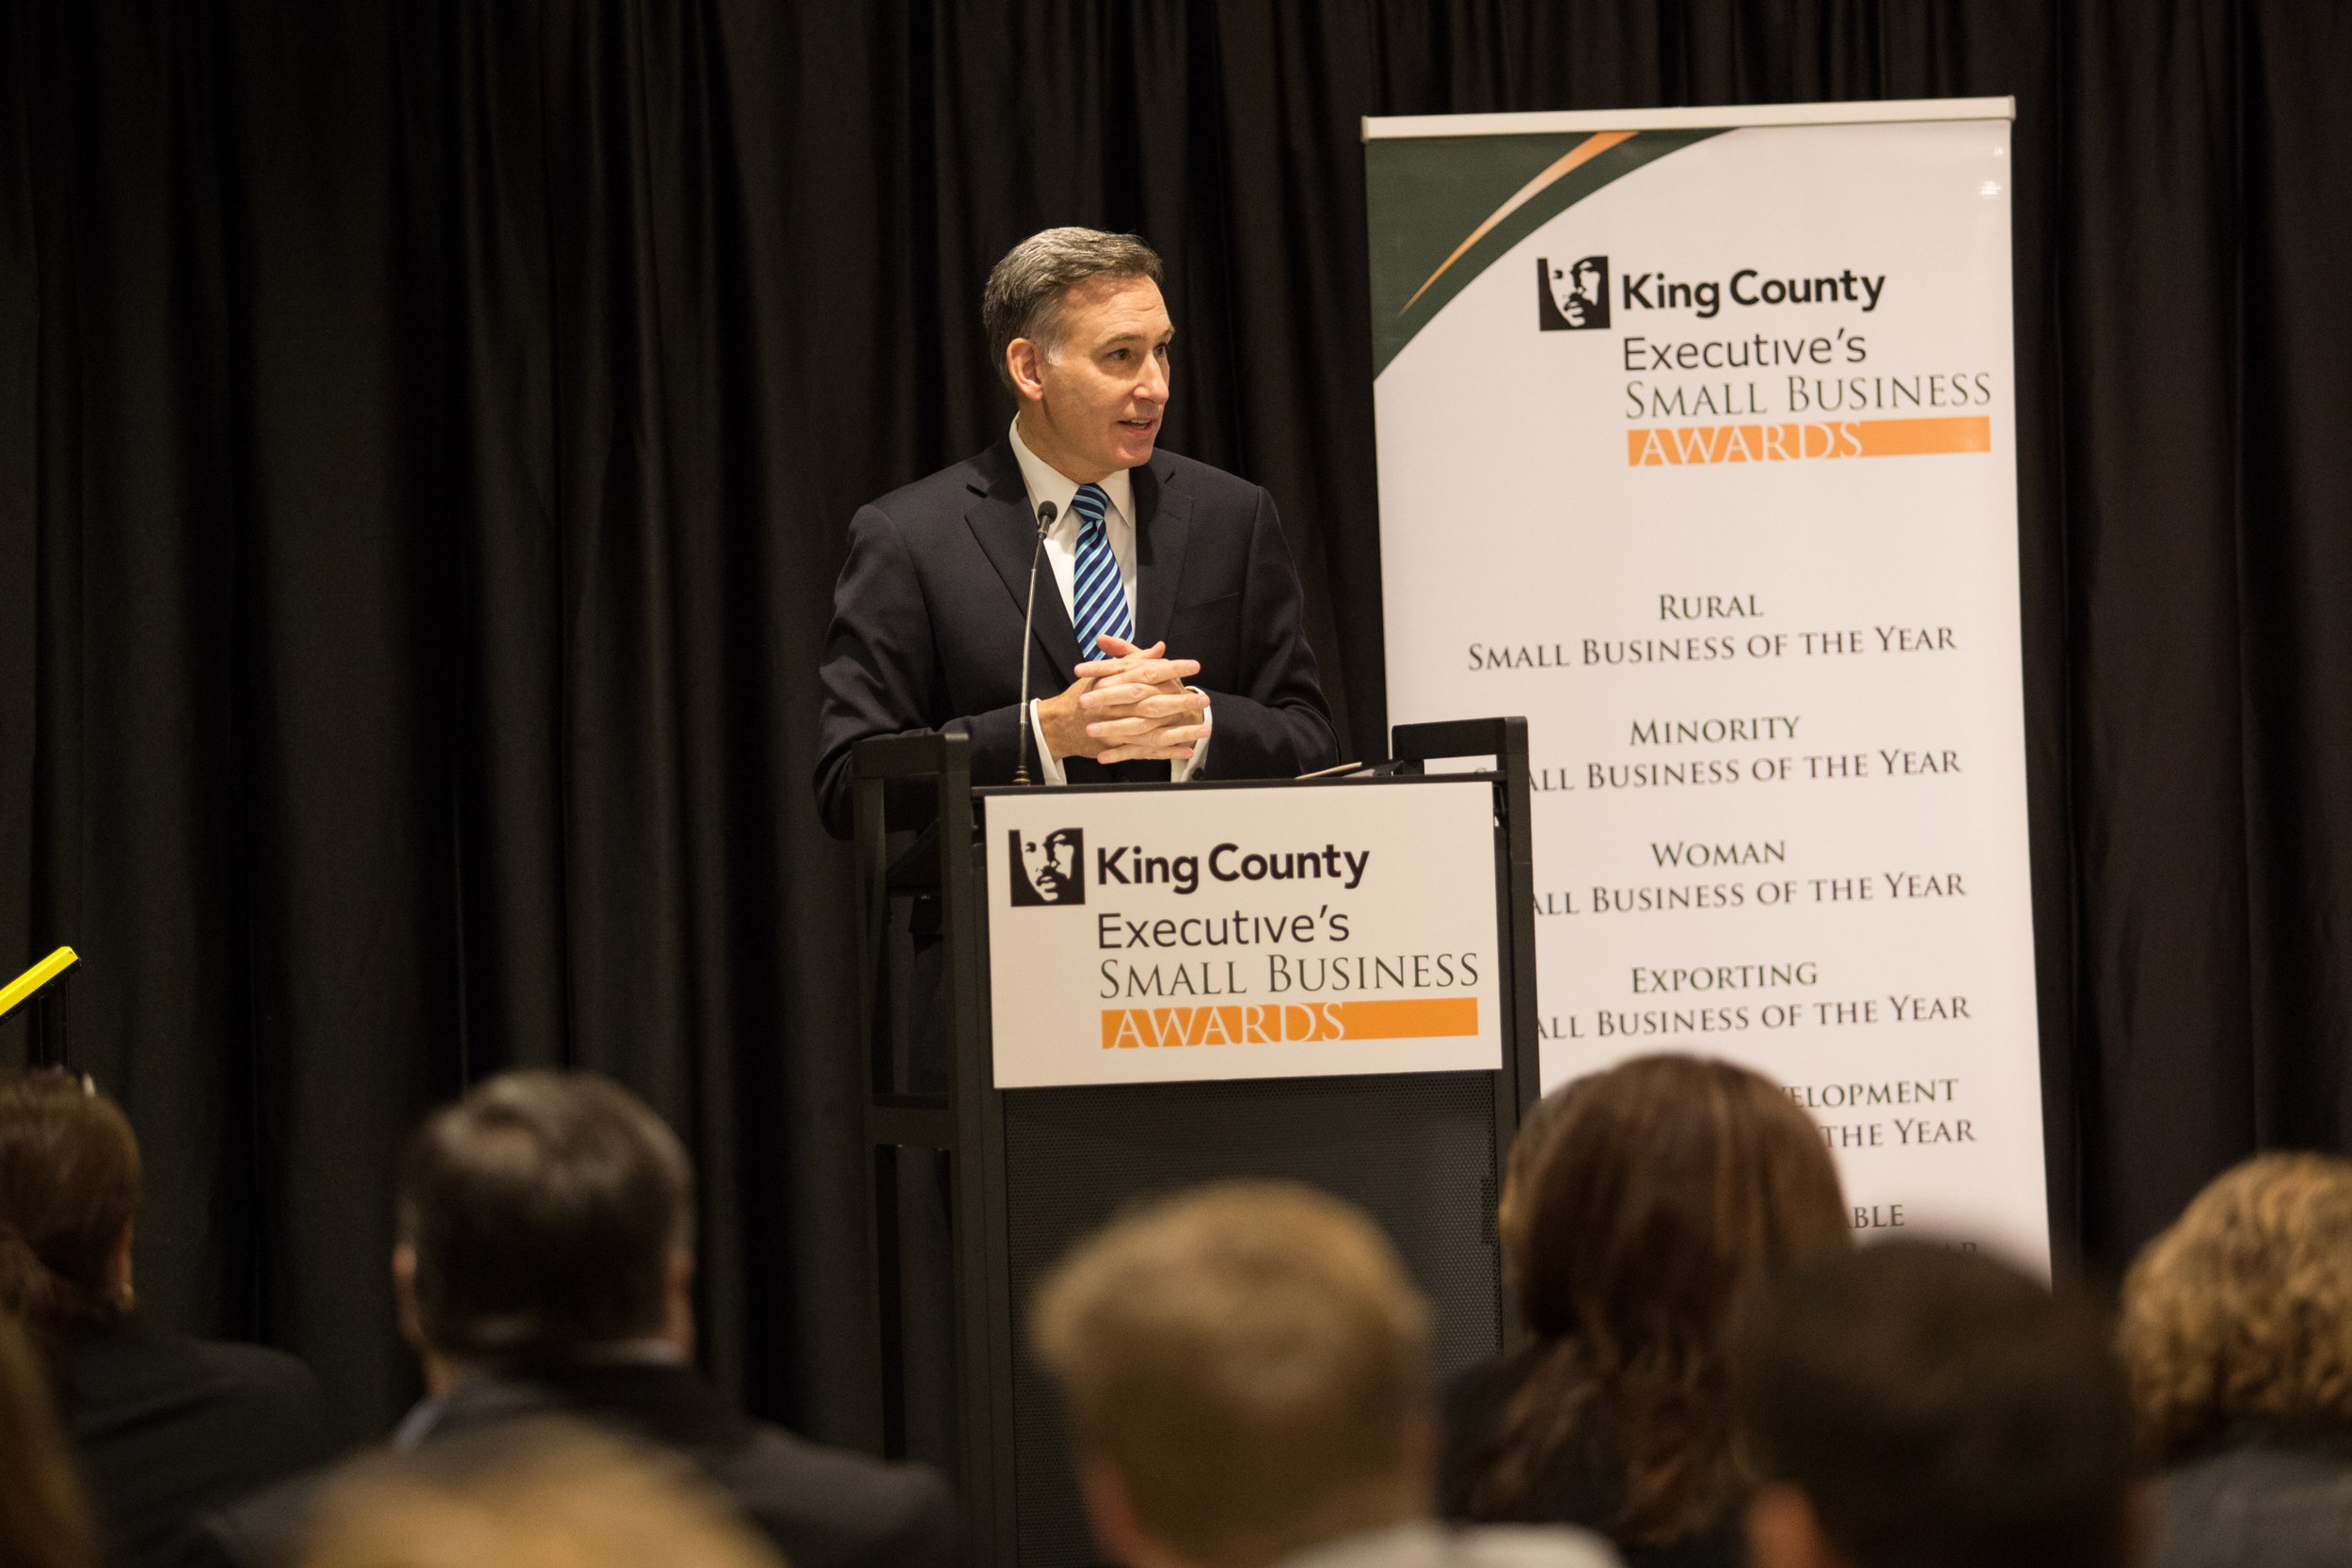 King County Executive Dow Constantine addresses the audience